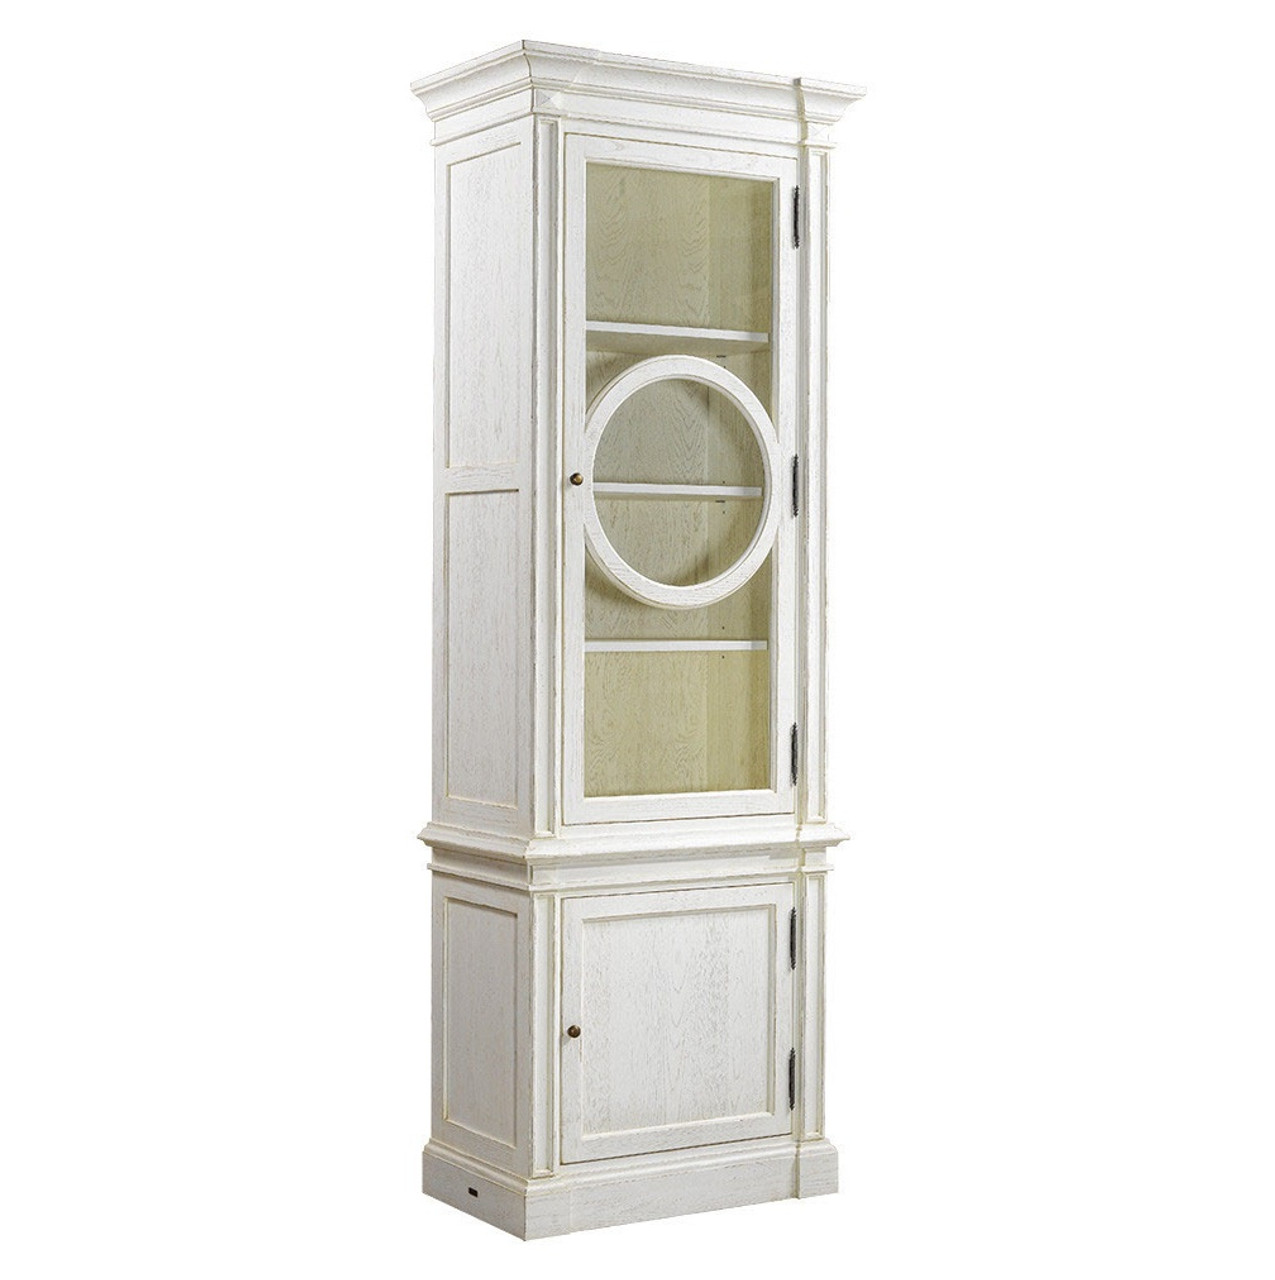 Parisian Vintage Oak Narrow Display Cabinet   White